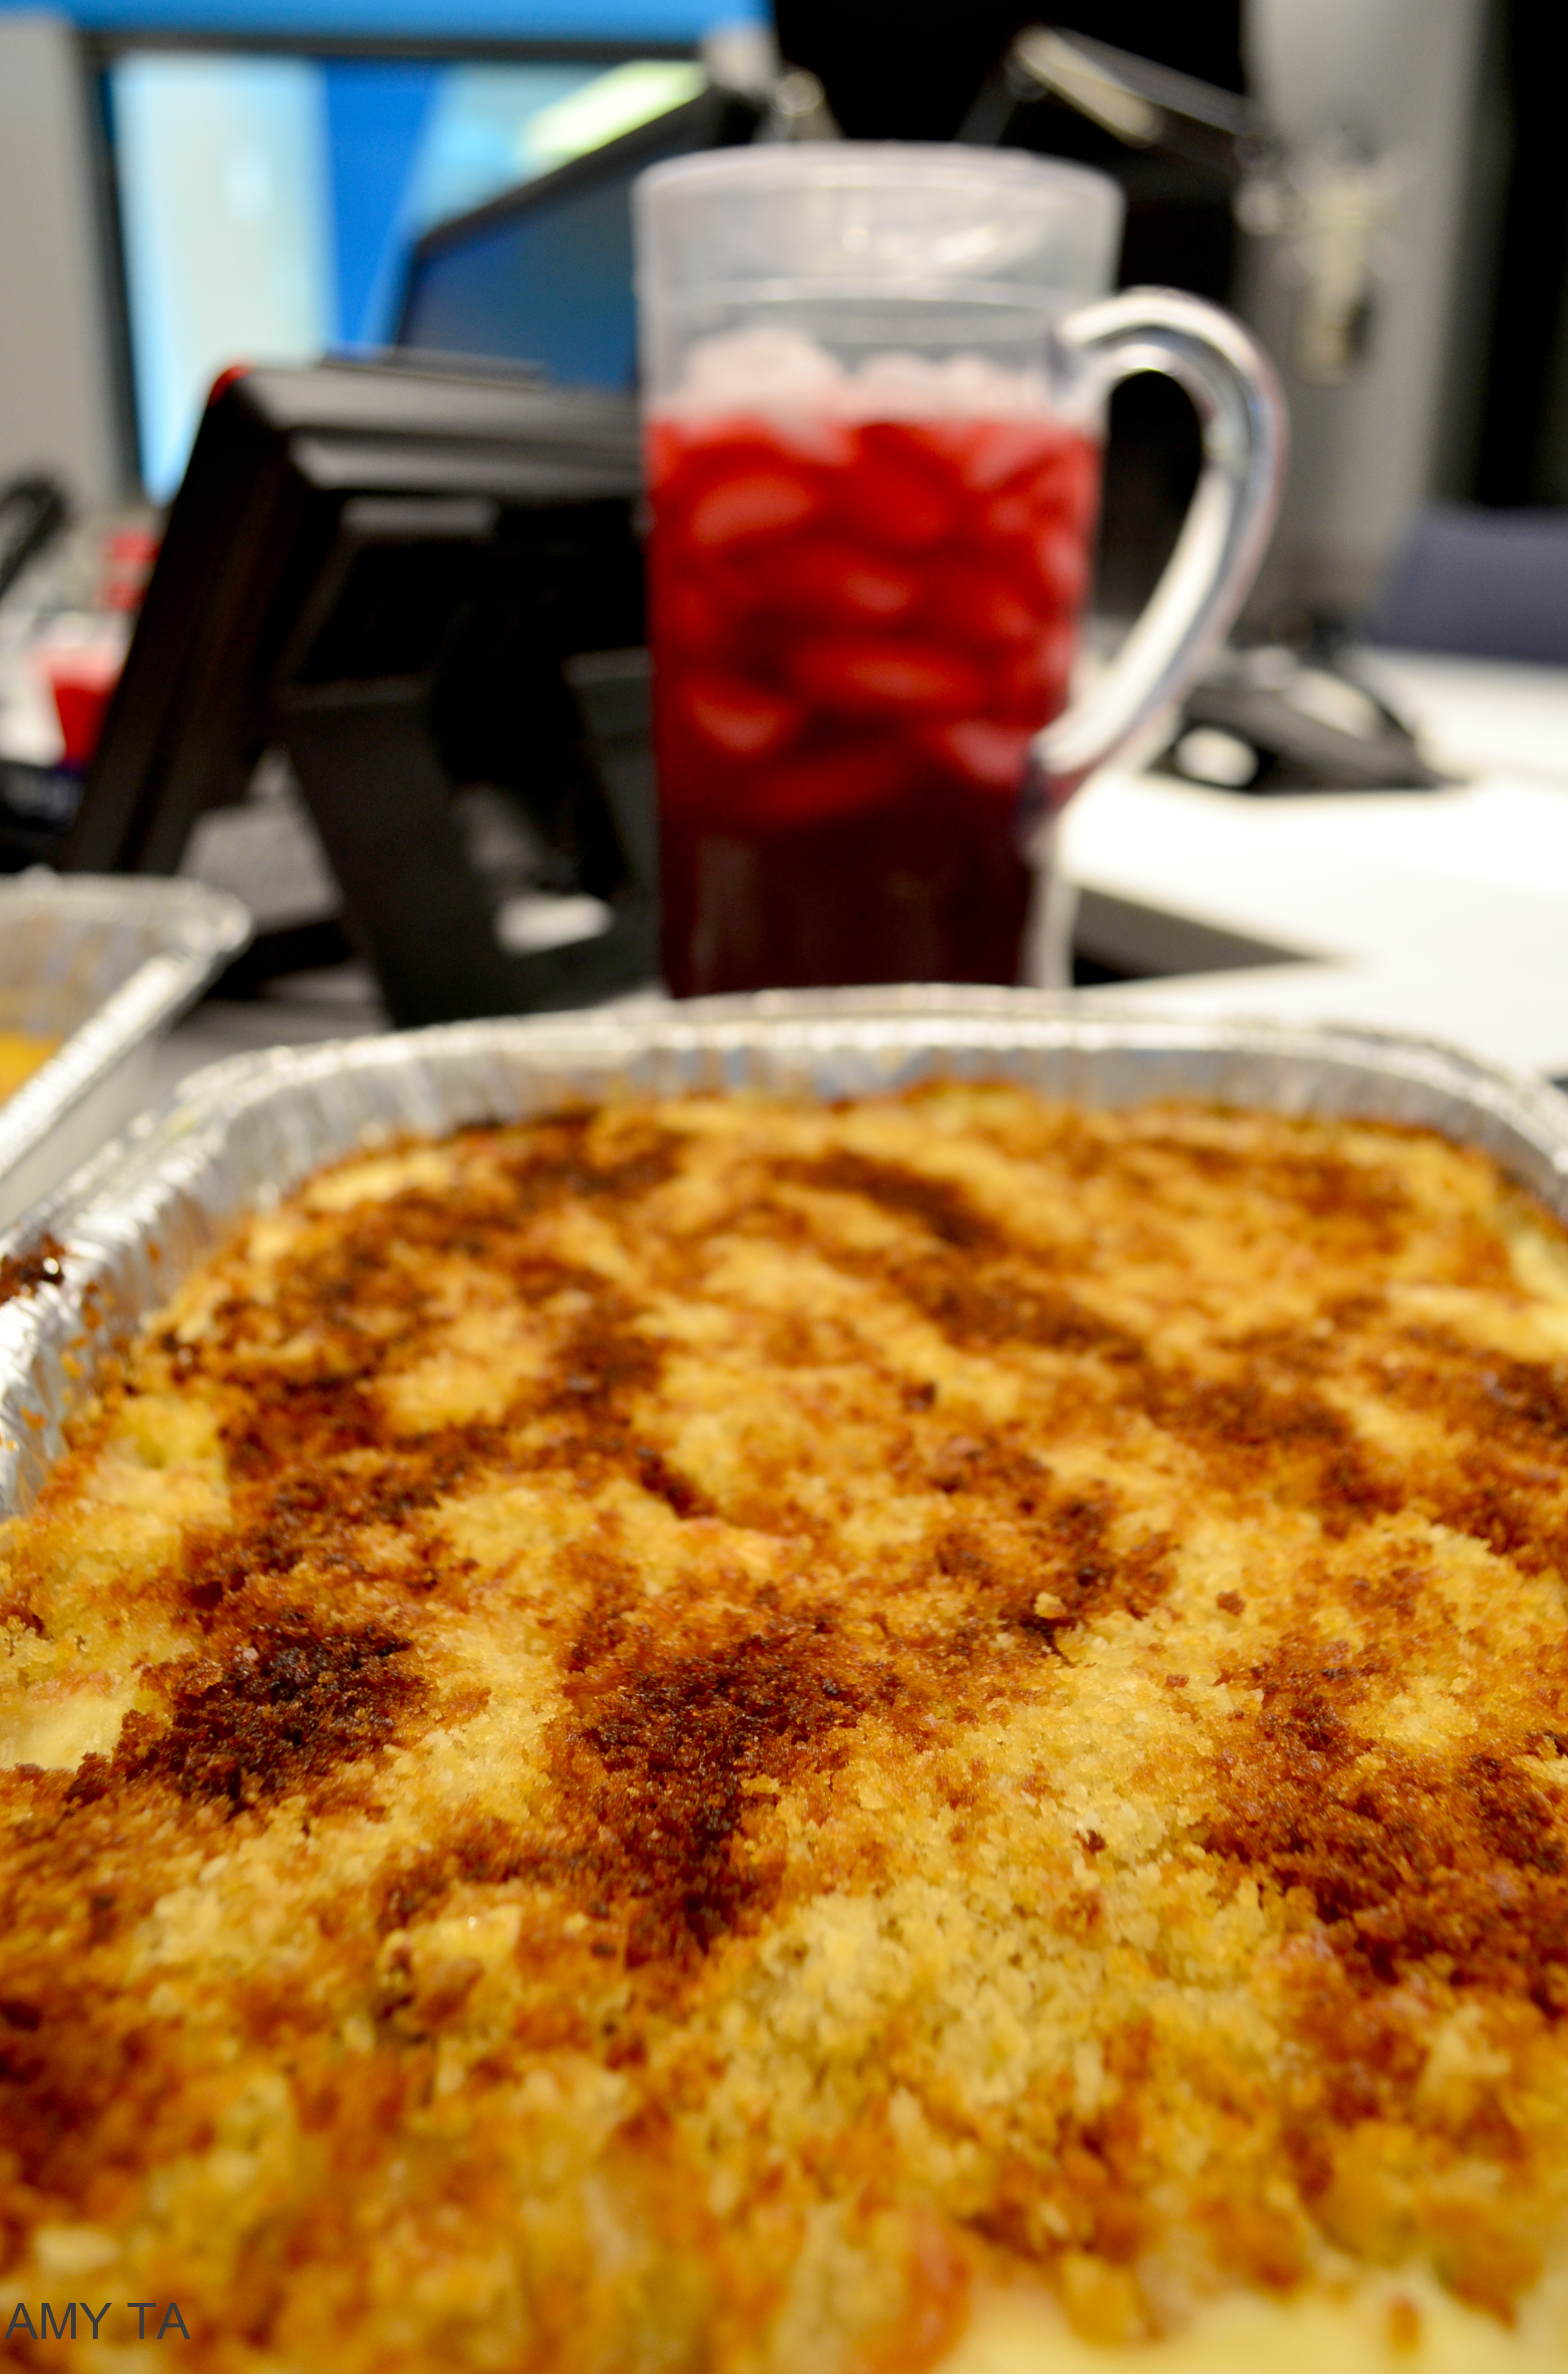 Soul Food For Thanksgiving: Mac And Cheese, 'Red Drink,' And More